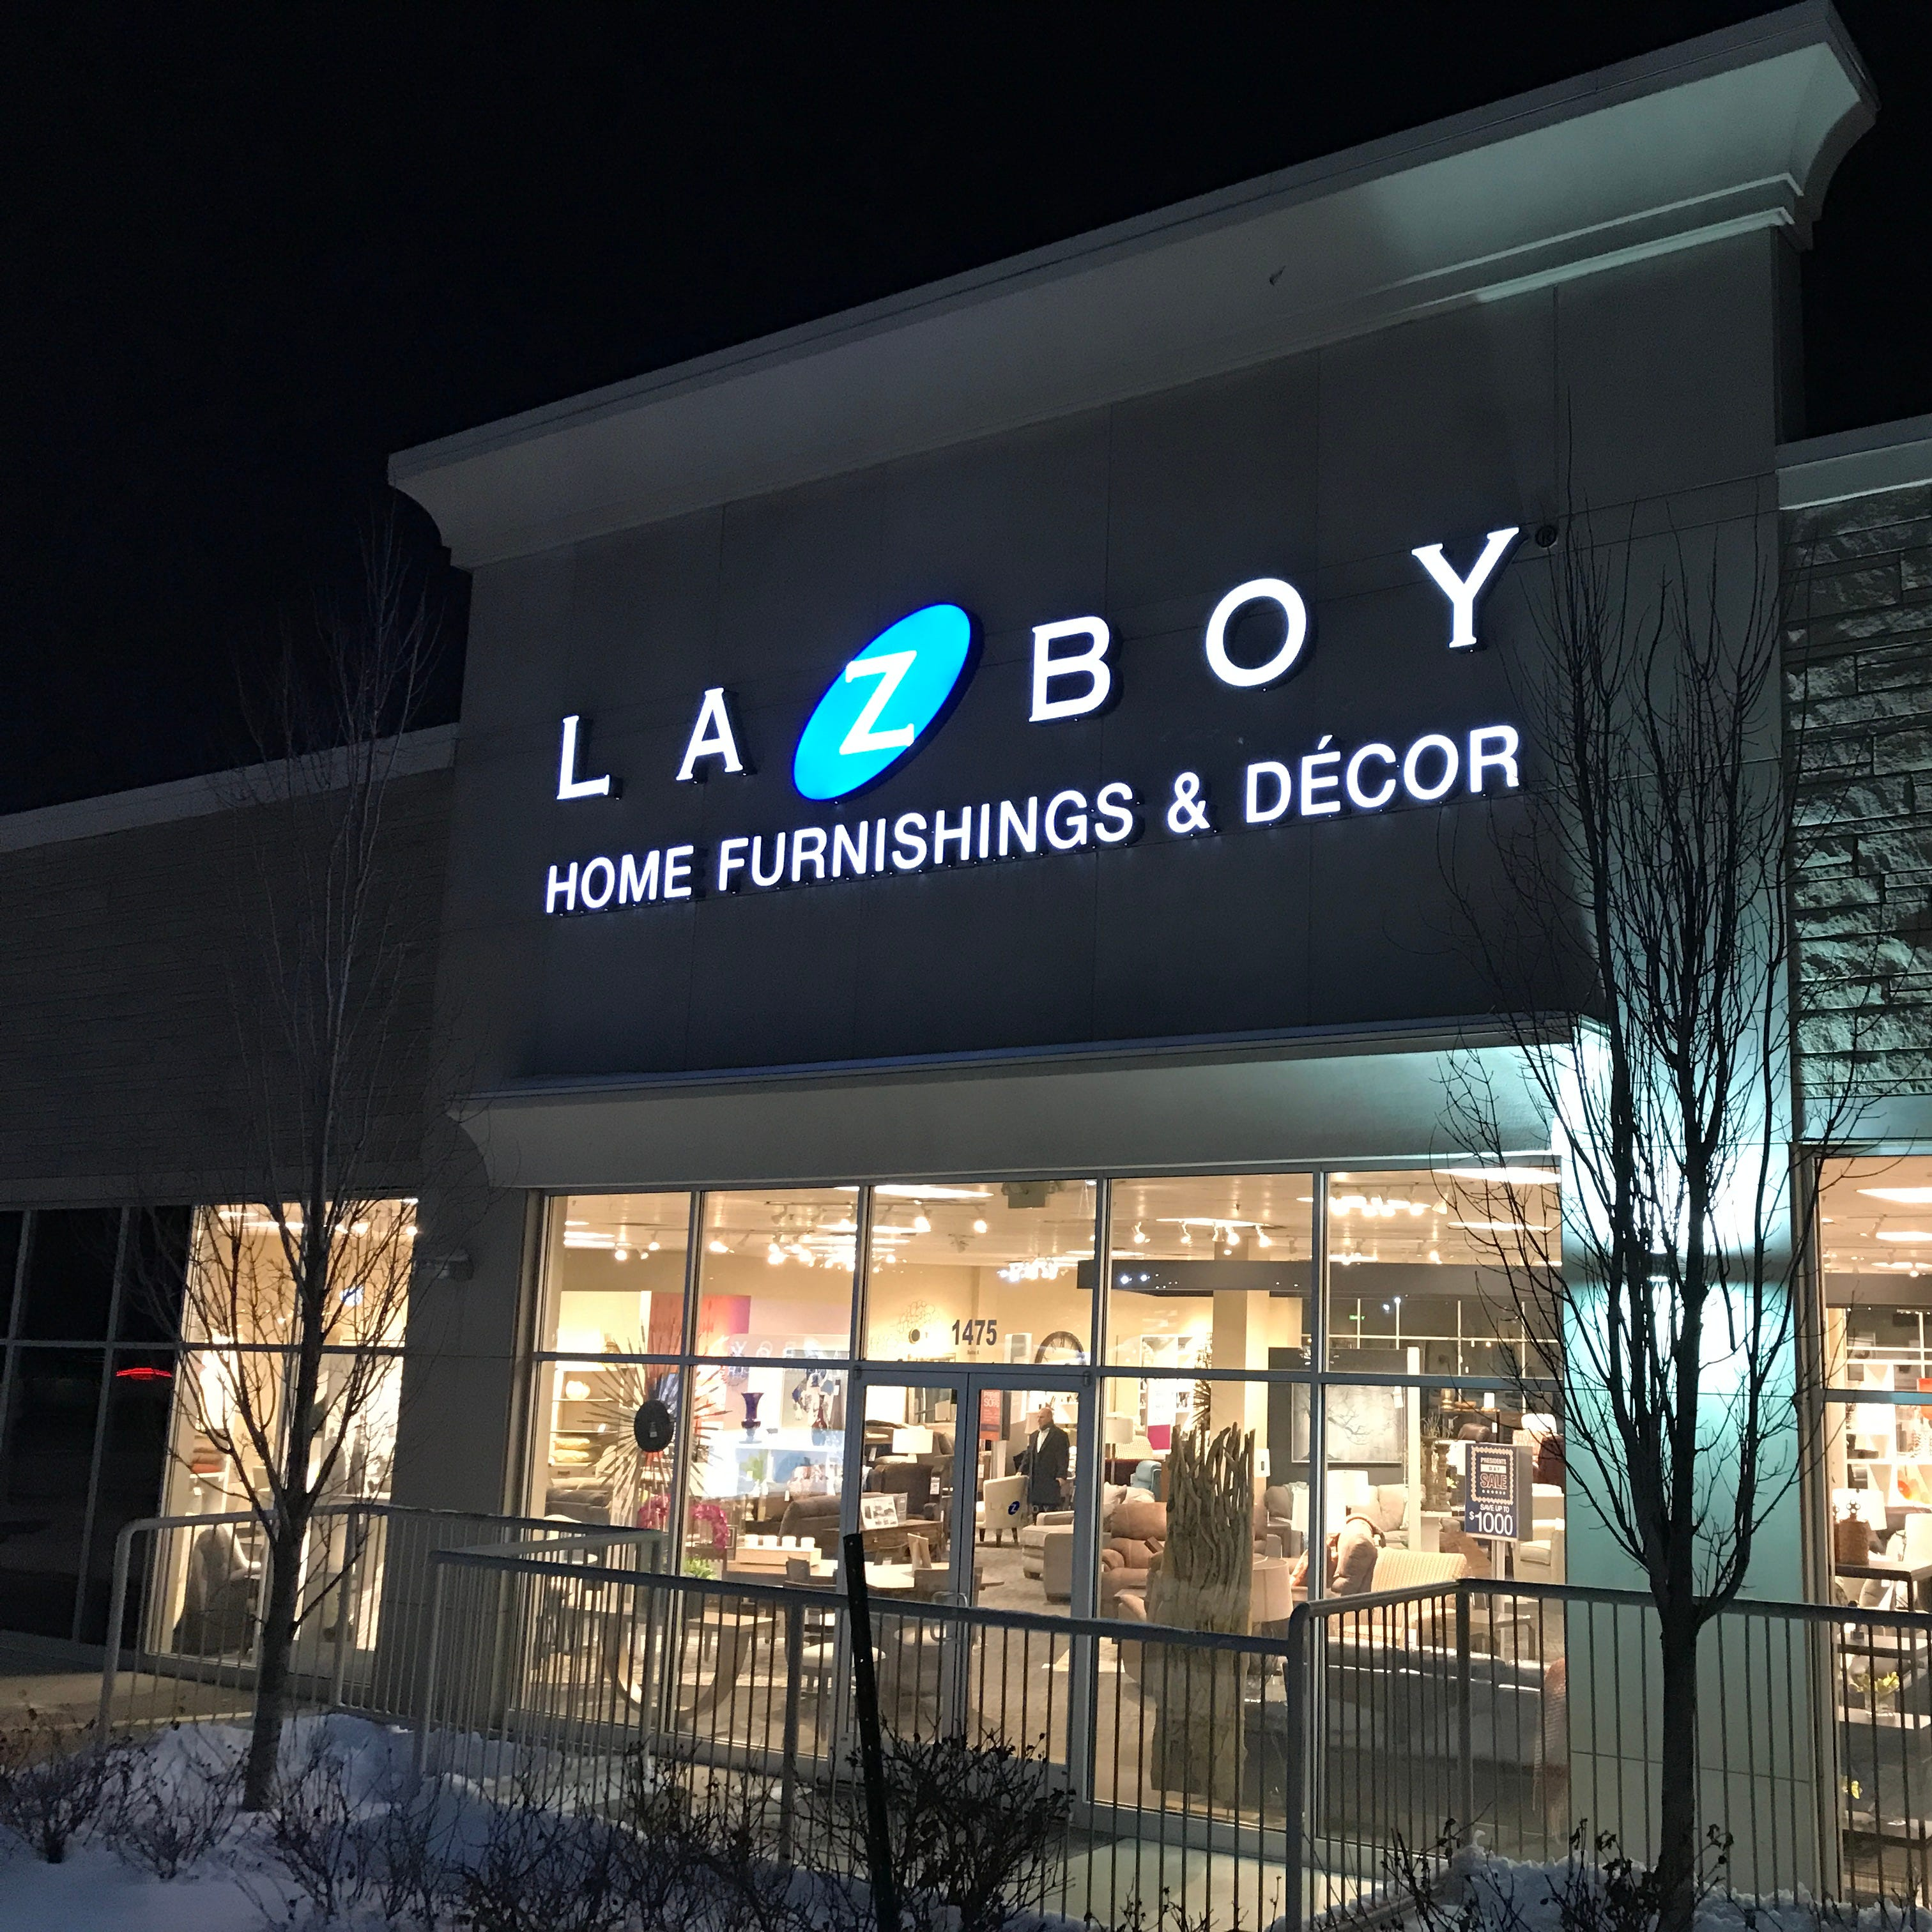 Acquisitions boost La-Z-Boy sales 13%